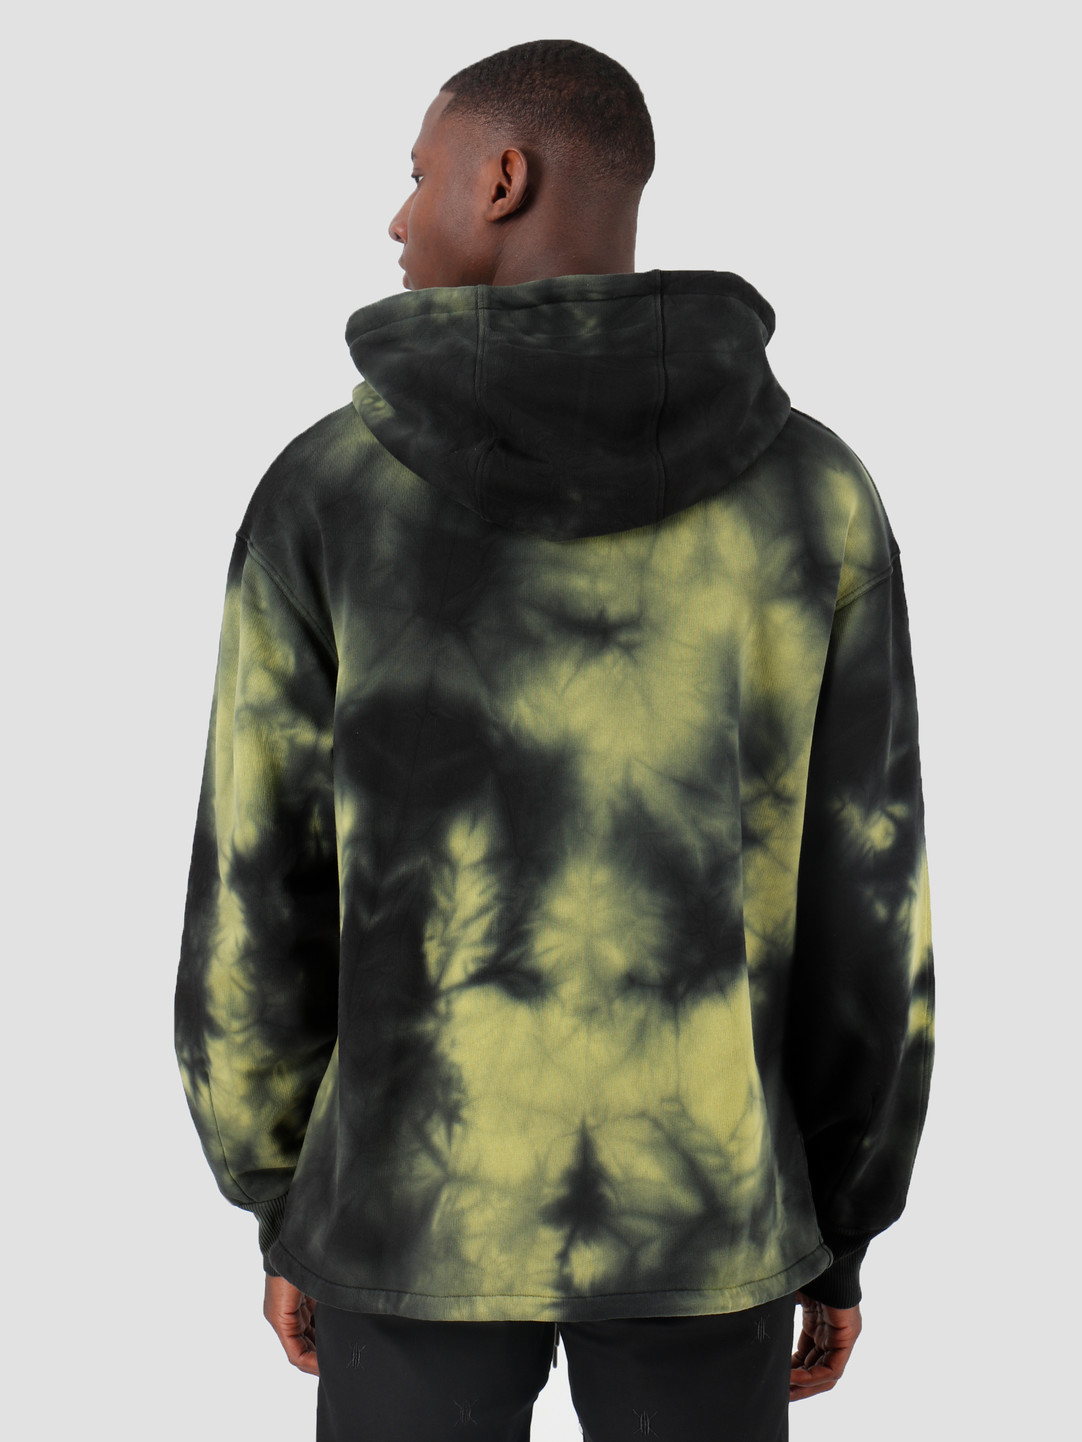 Daily Paper Daily Paper Gadrulp Hoodie Sulphur Spring Yellow 19F1HD12-02